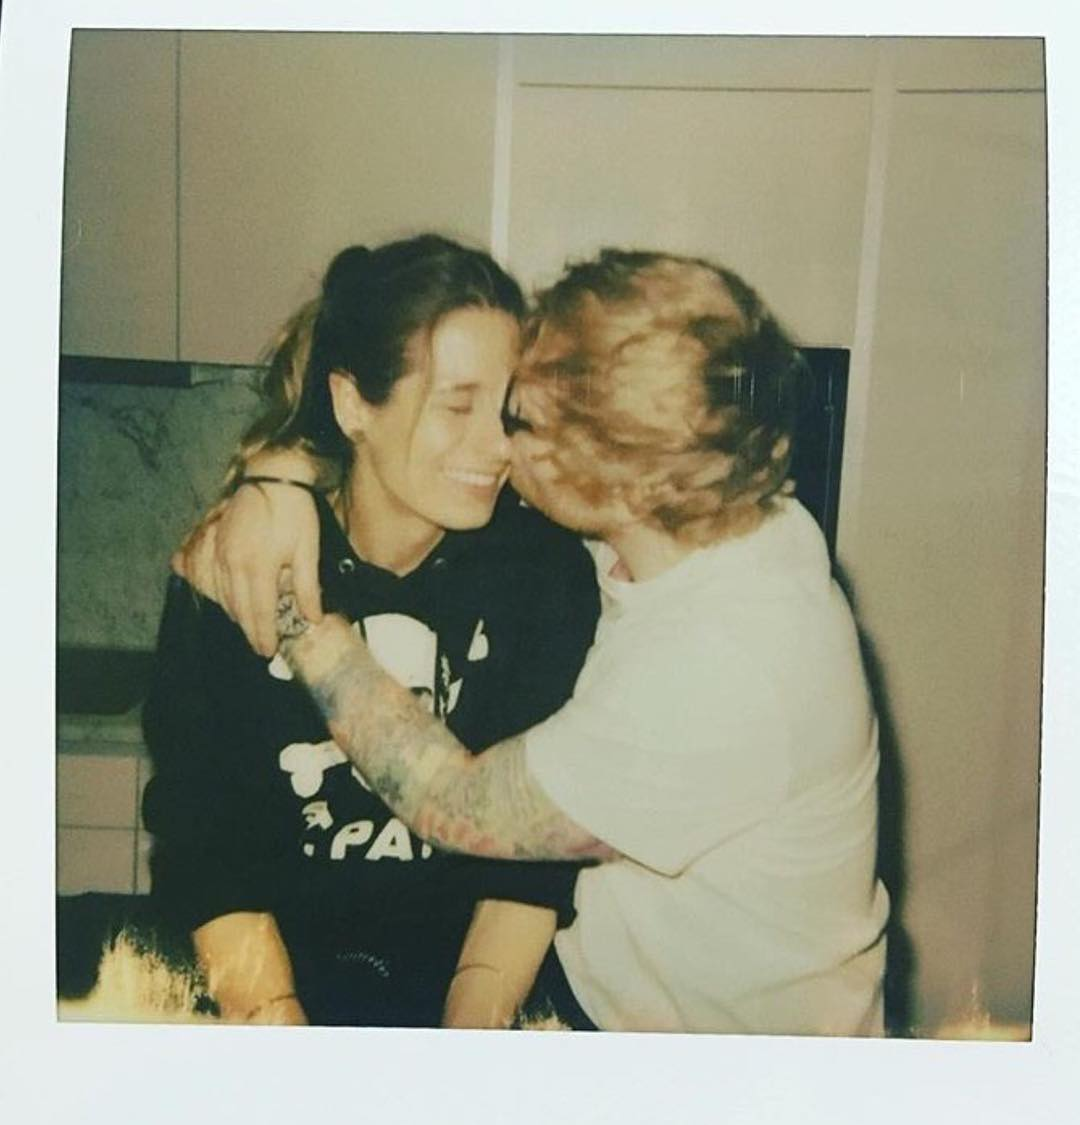 Ed Sheeran Engaged